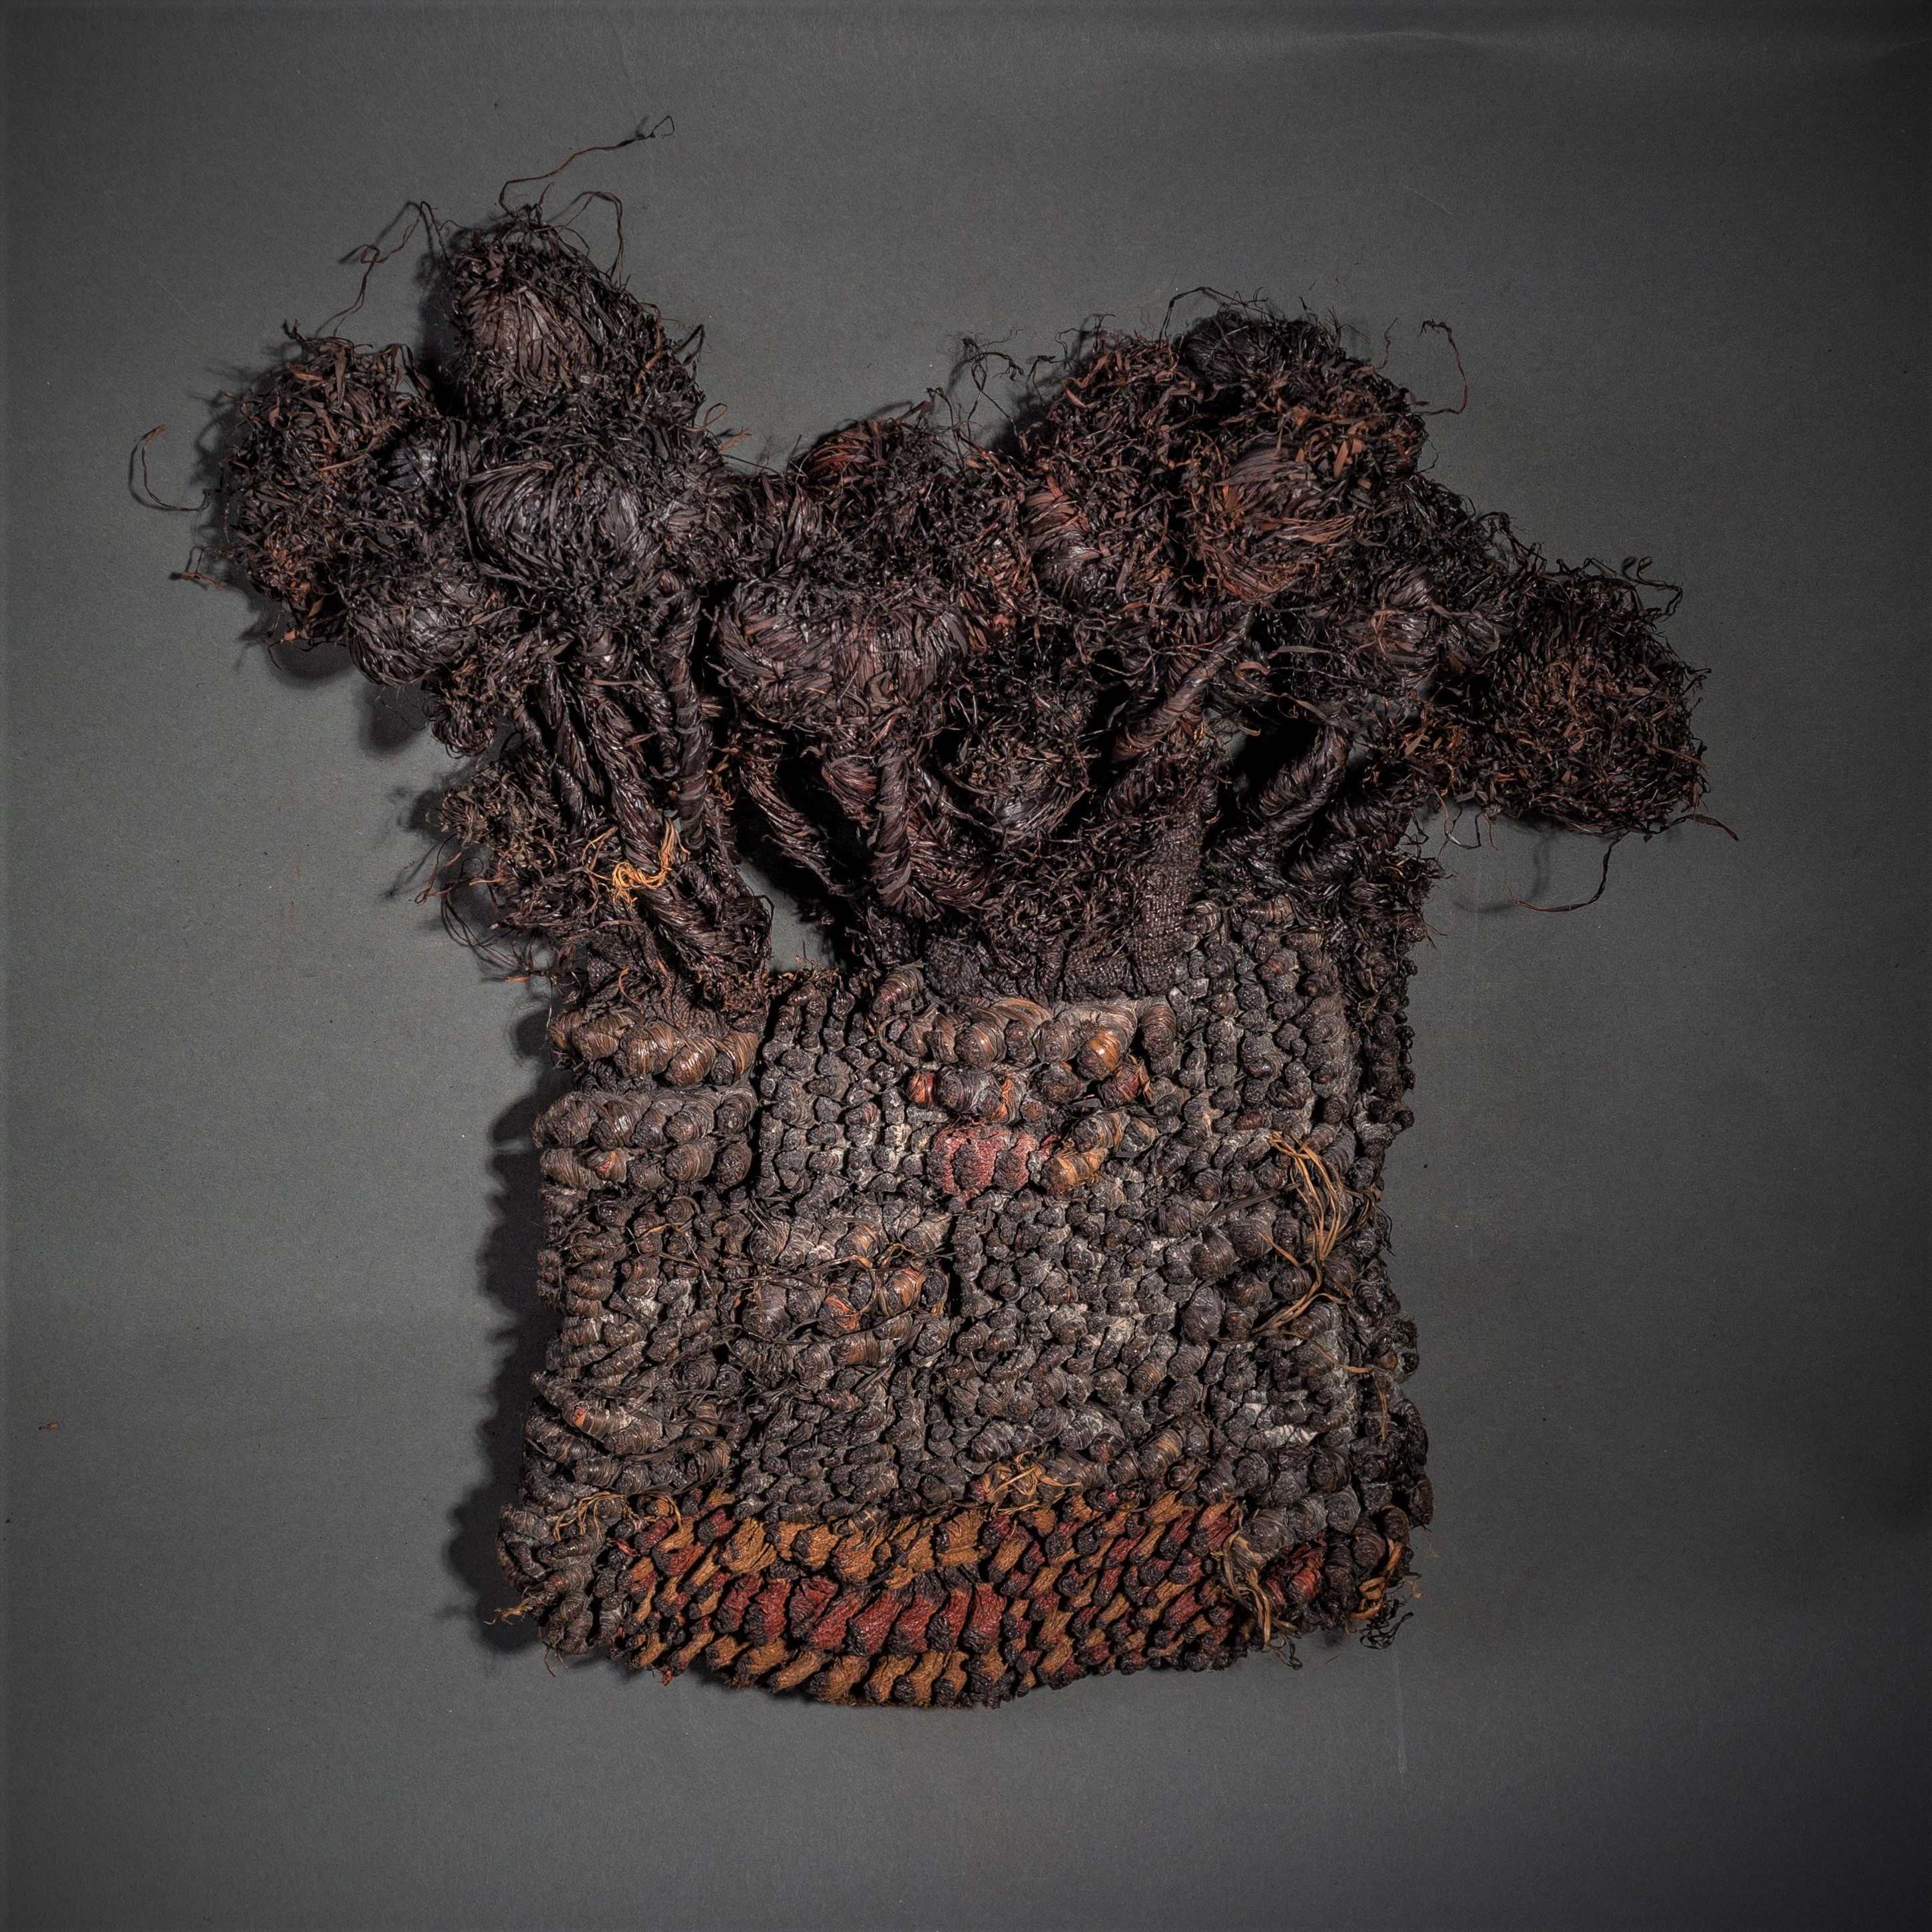 A RARE OLD DIDA HAT WITH INTRICATE TEXTURES ( No 132 )